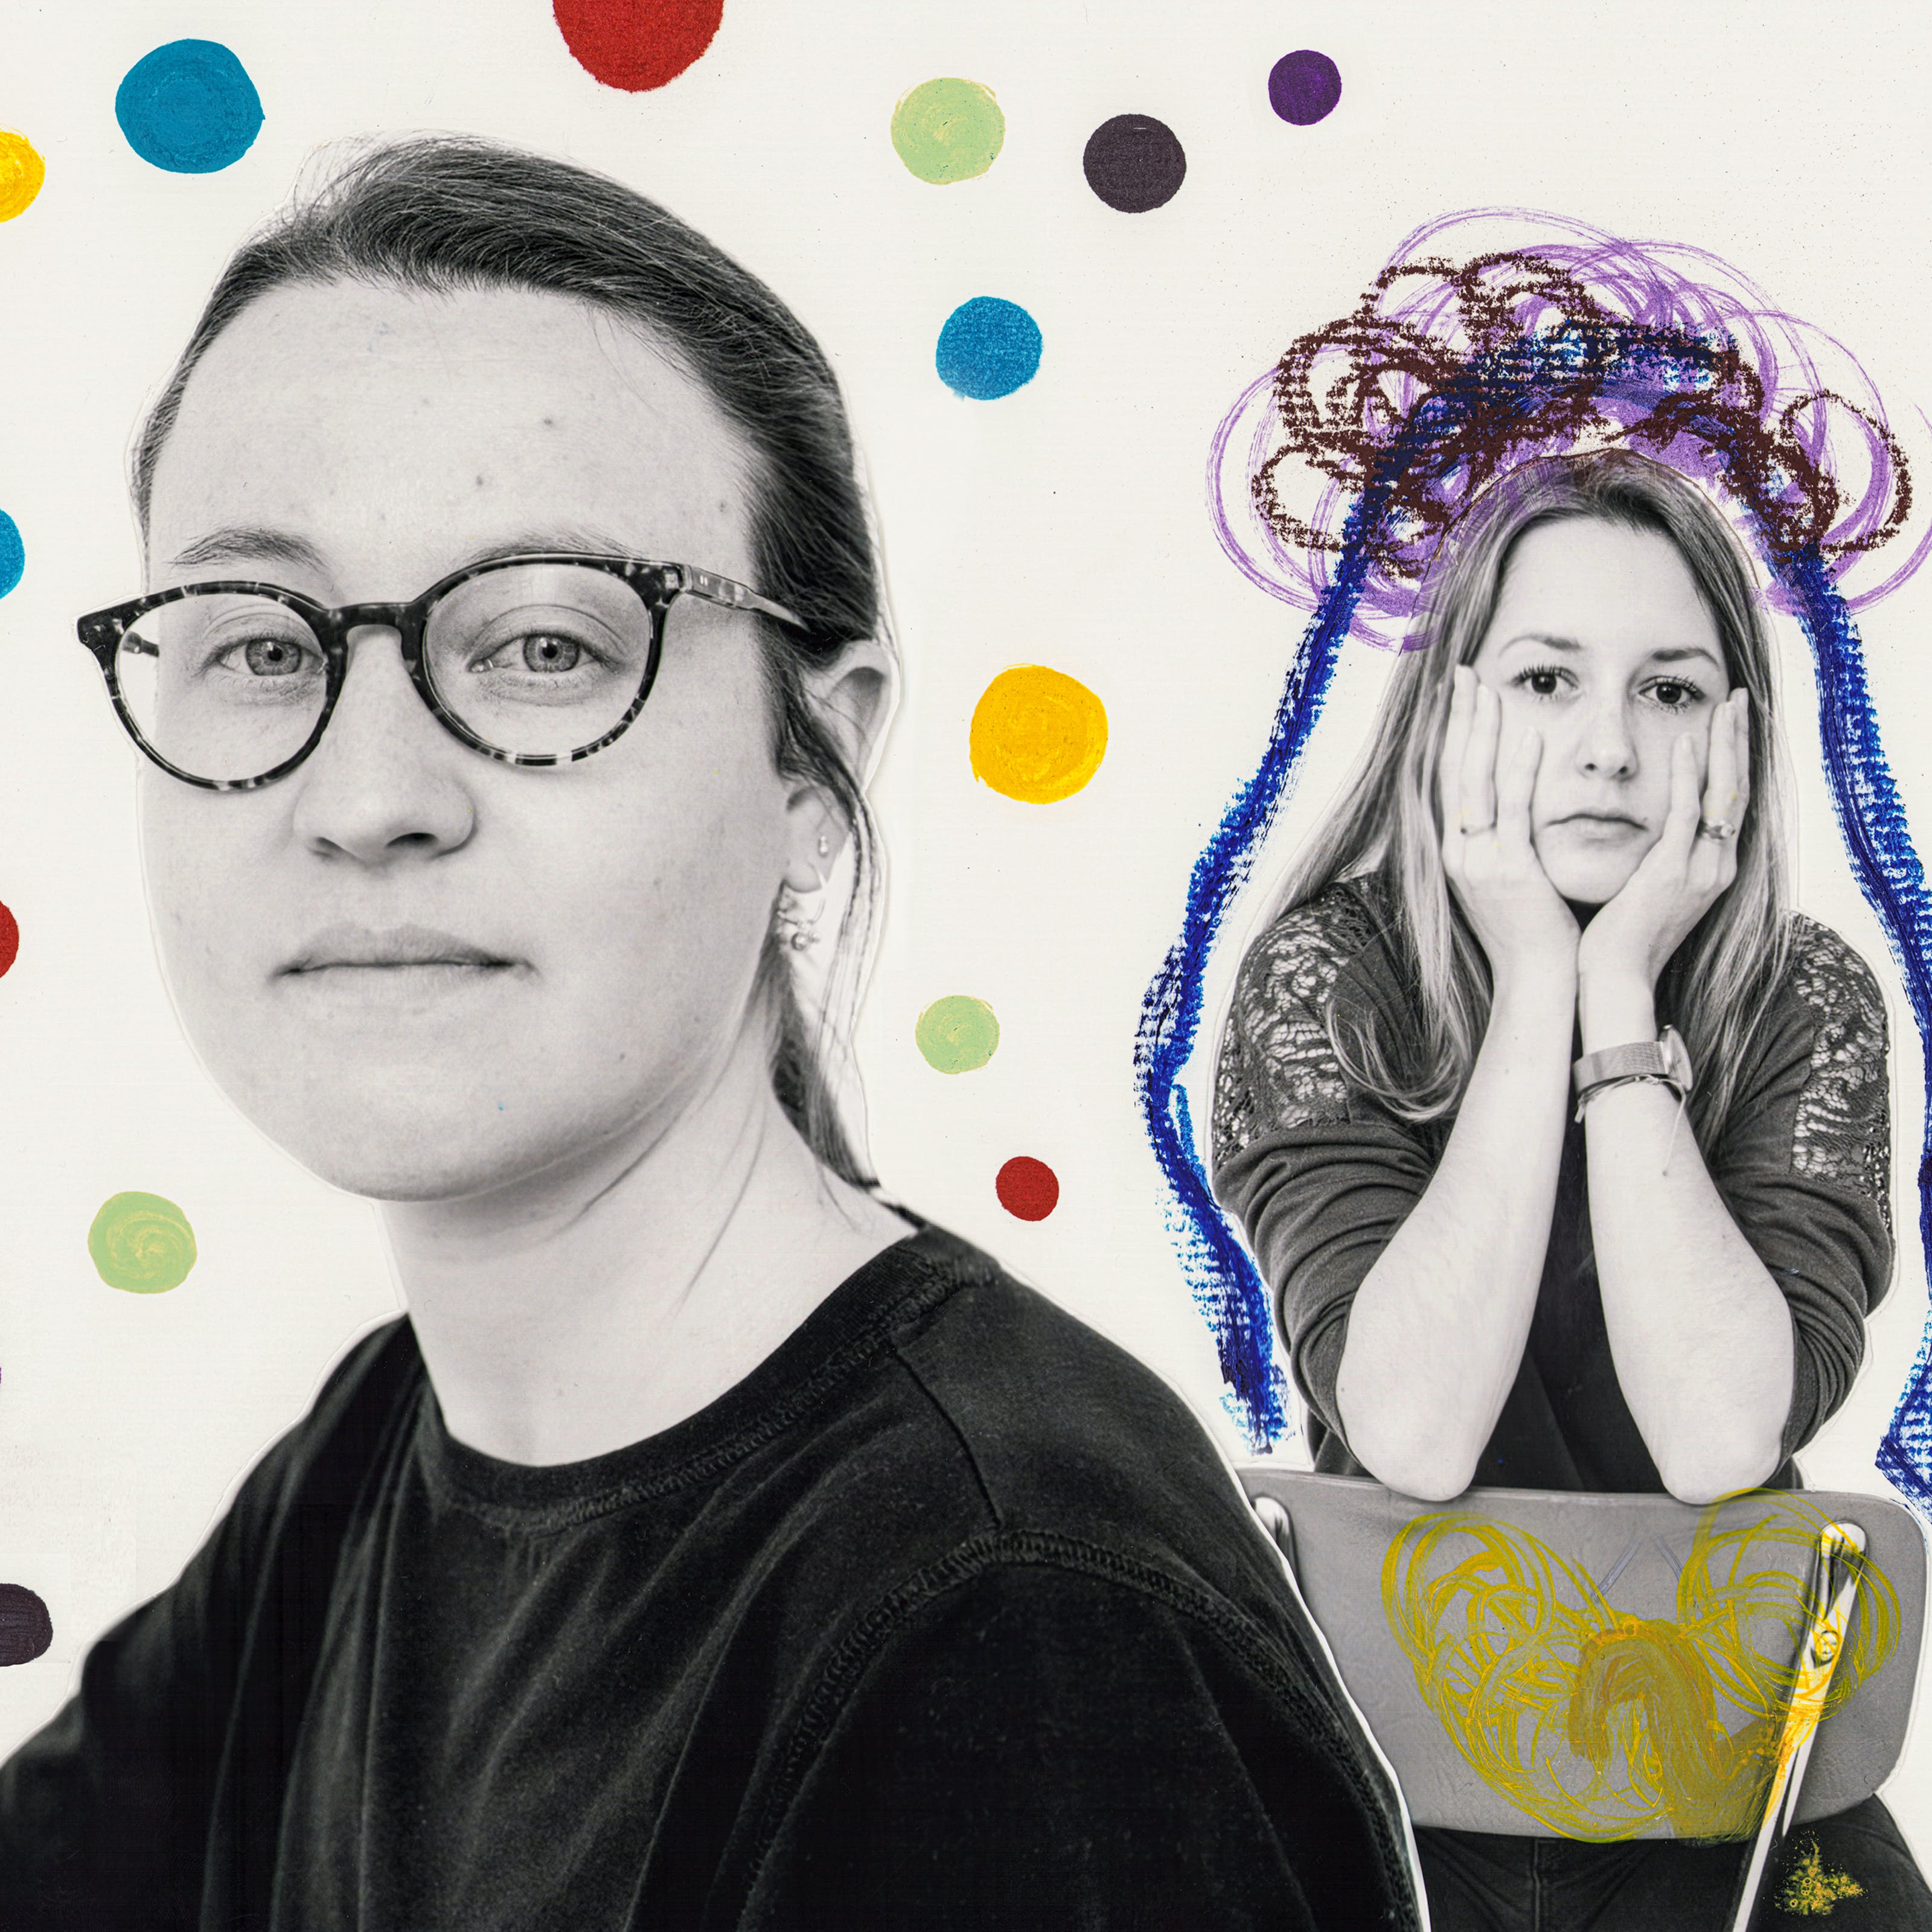 """Mixed media collage of four people, three female and one male, taken from various distances.  Surrounding them are various hand drawn doodles.  The closest person, to the left of the frame, is a woman wearing glasses, surrounded by colourful dots. Behind her a woman is sitting backwards on a chair with her head in her hands.  She has been outlined in blue and black pen and has an ominous cloud above her head.  Towards the center right the full body portrait of a man with his arms folded and staring at the camera.  A series of outlines surround his body, complete with a yellow mark drawn on his chest.  To the far right, the full body portrait a woman is framed by the handwritten words """"Not that much has changed"""" in purple marker pen."""